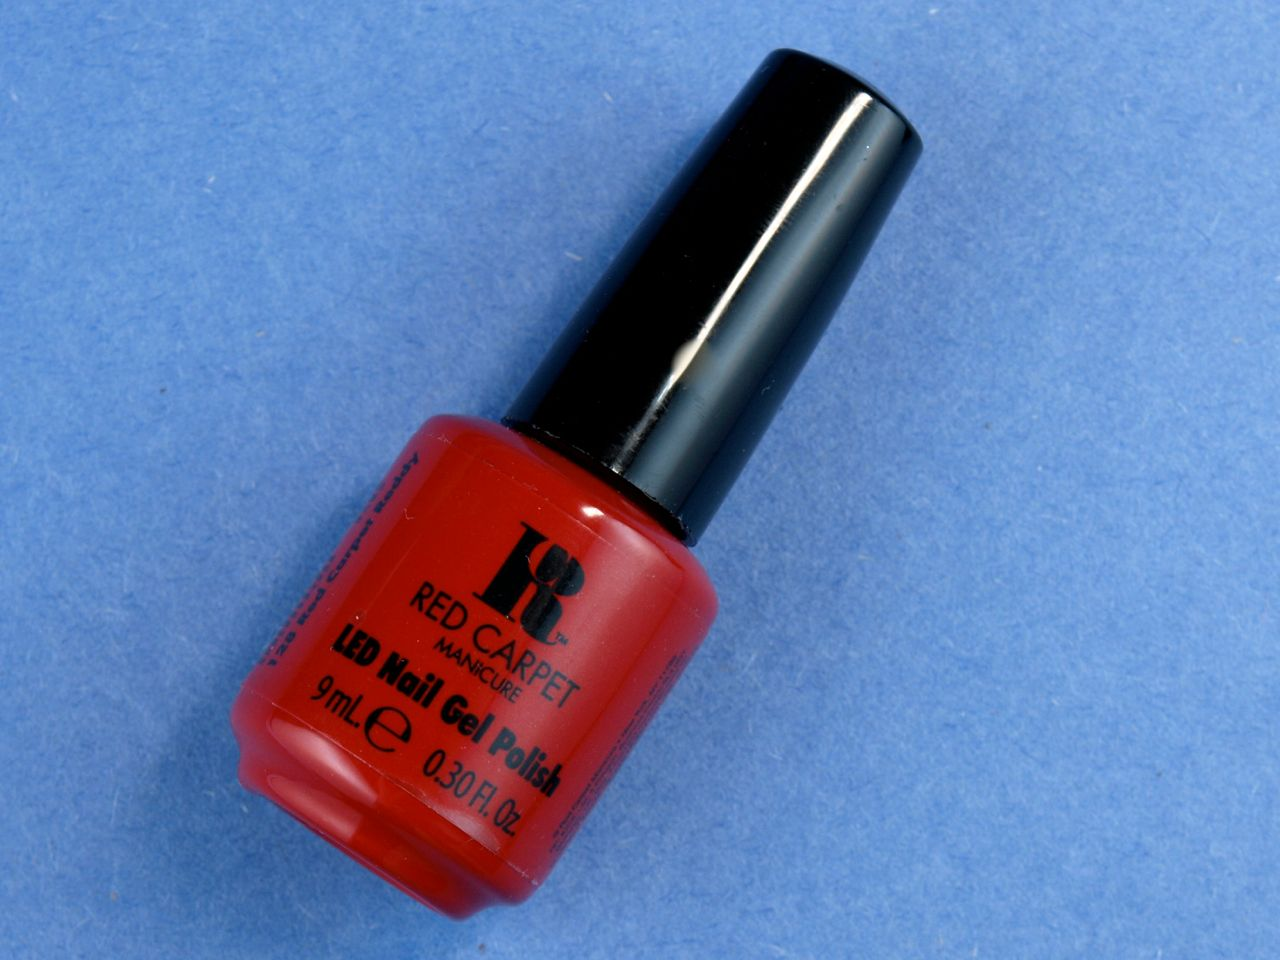 Red Carpet Manicure Gel Polish Starter Kit: Review and Swatches